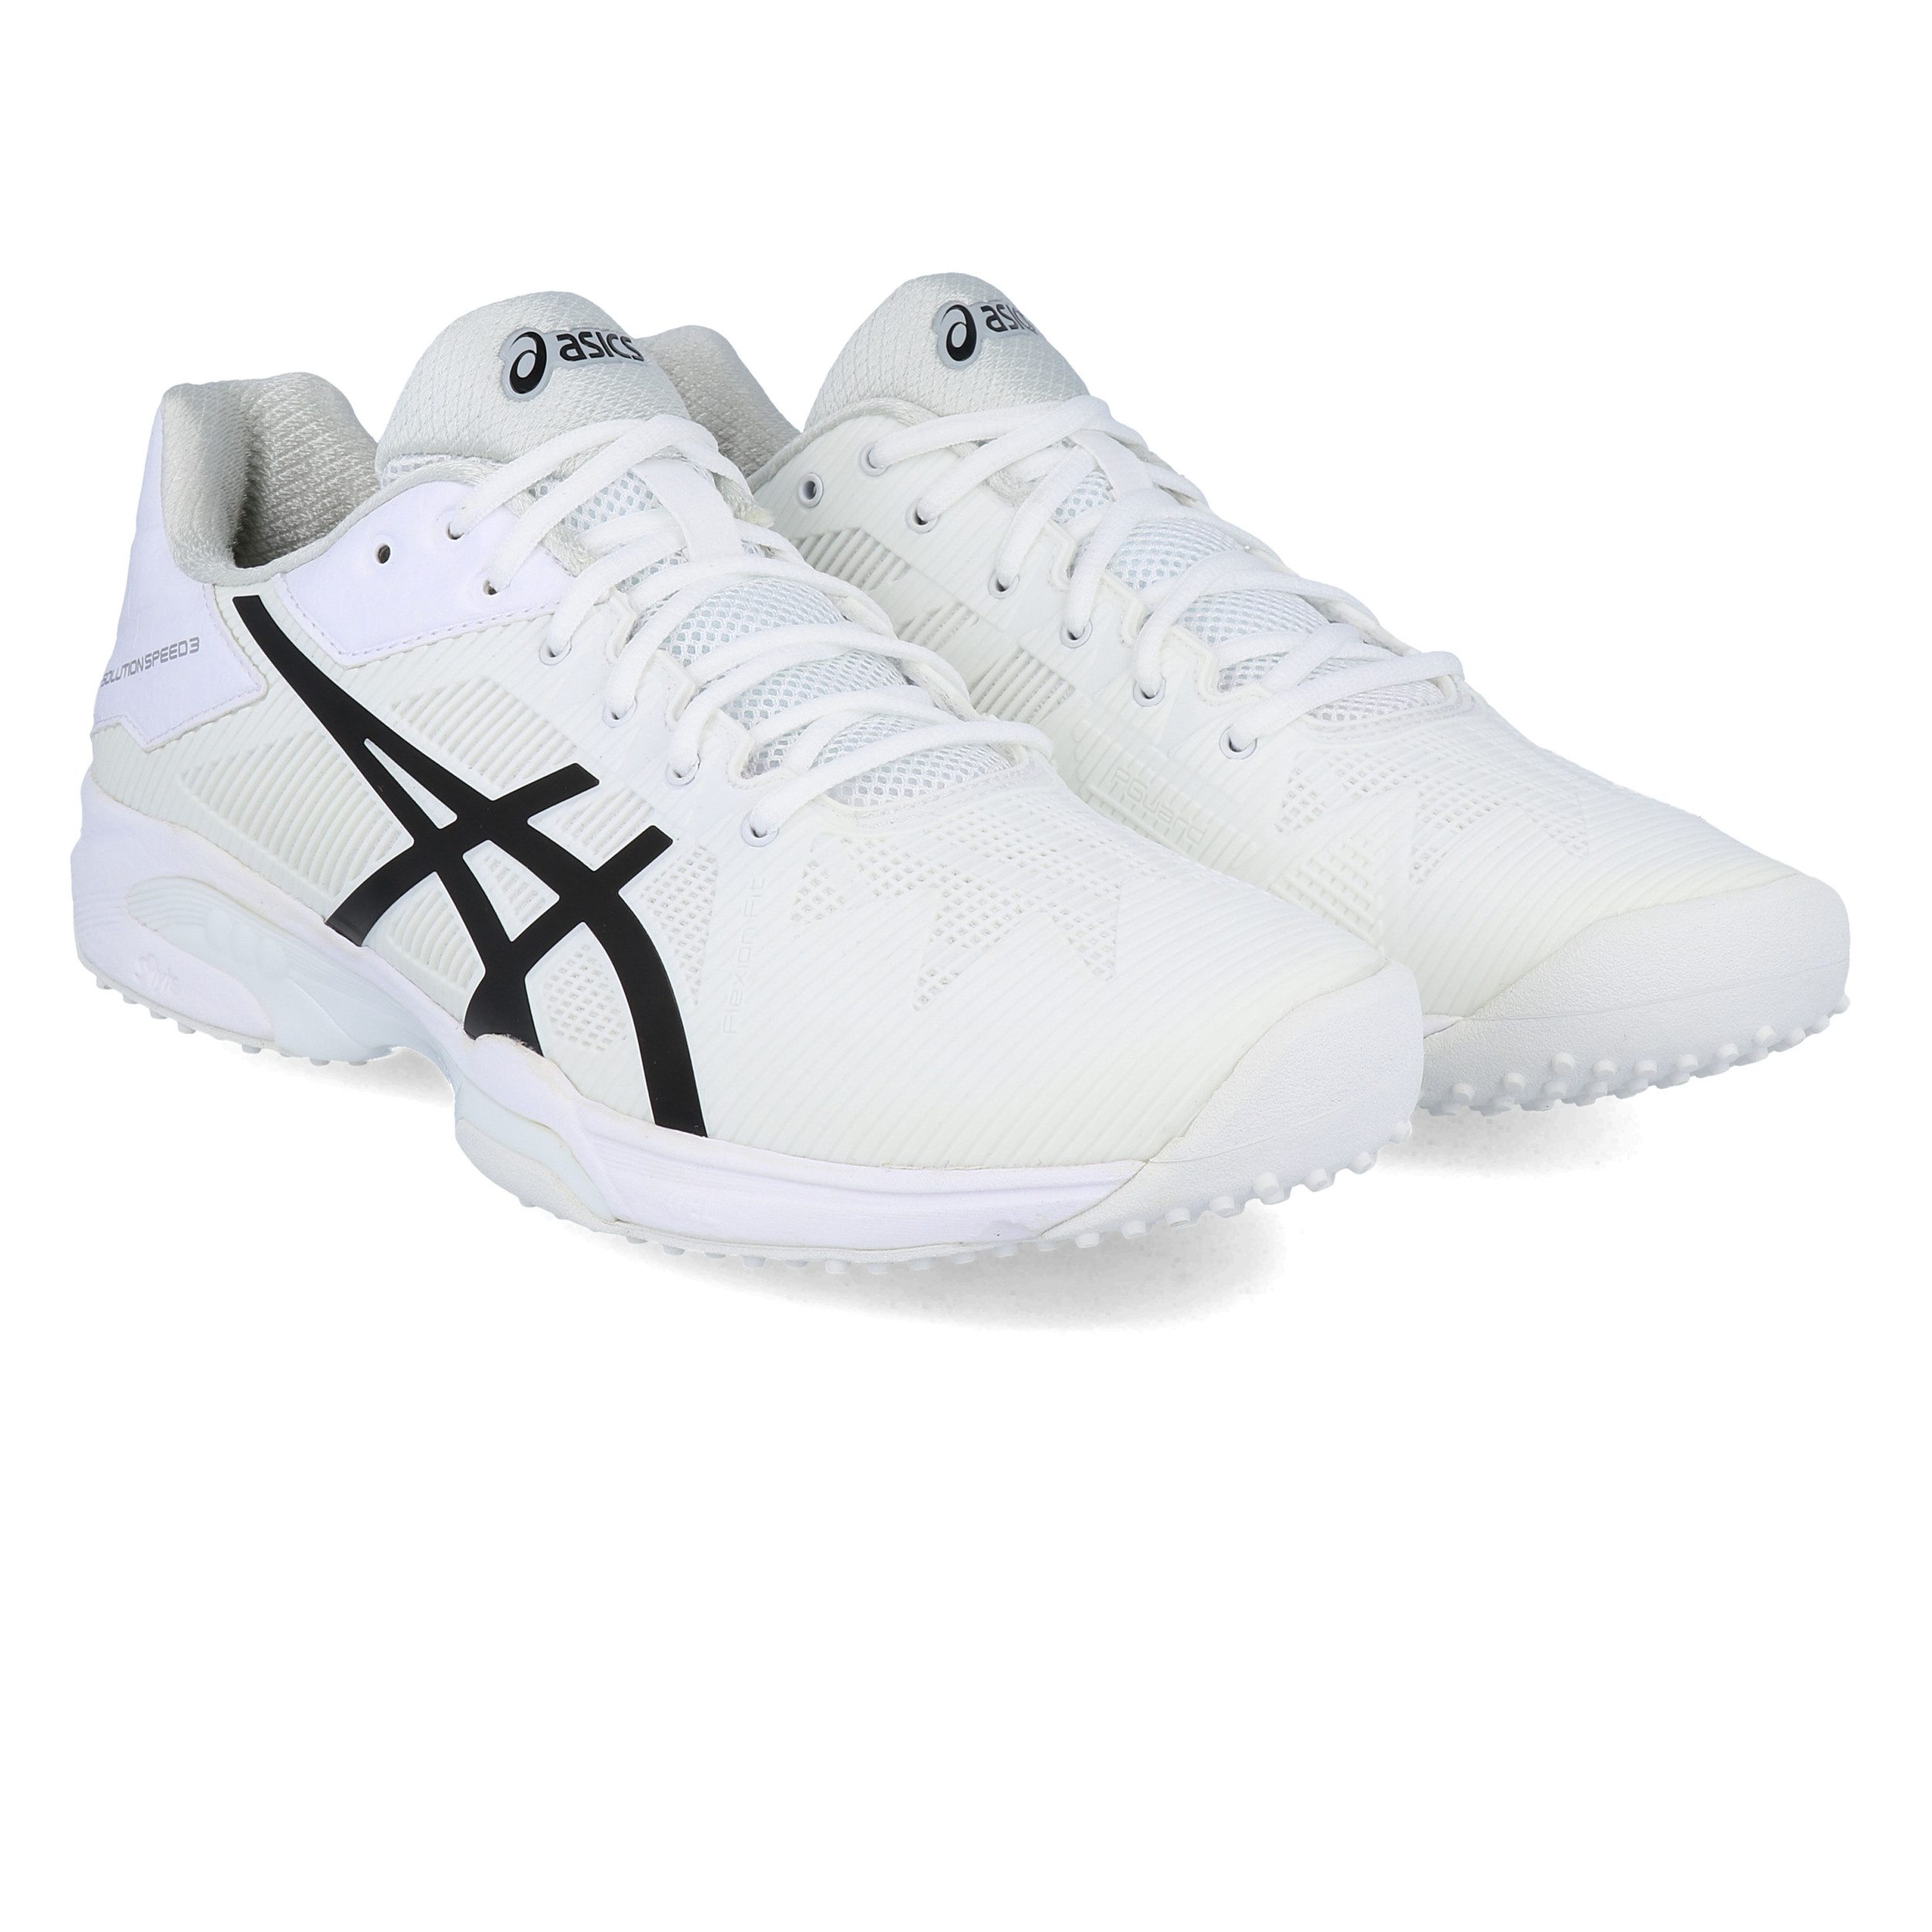 Details about Asics Womens Gel-Solution Speed 3 Grass Court Tennis Shoes  White Sports